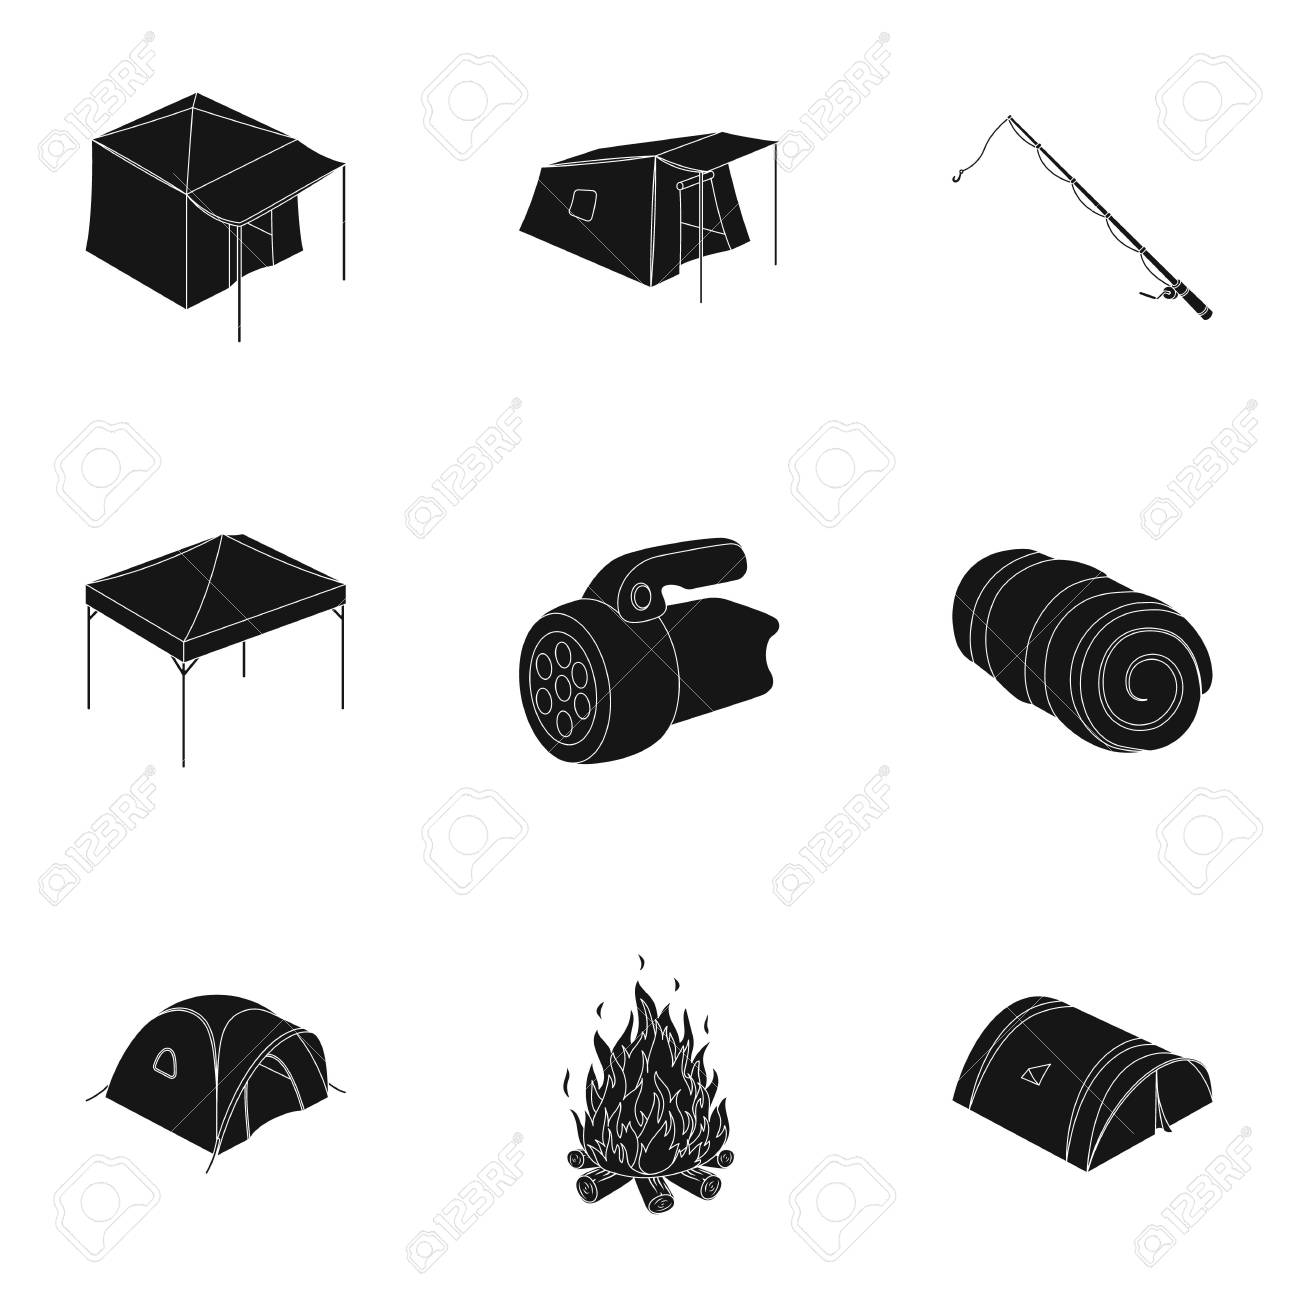 Various kinds of tents and other tourist accessories. The tent set collection icons in black  sc 1 st  123RF.com & Various Kinds Of Tents And Other Tourist Accessories. The Tent ...